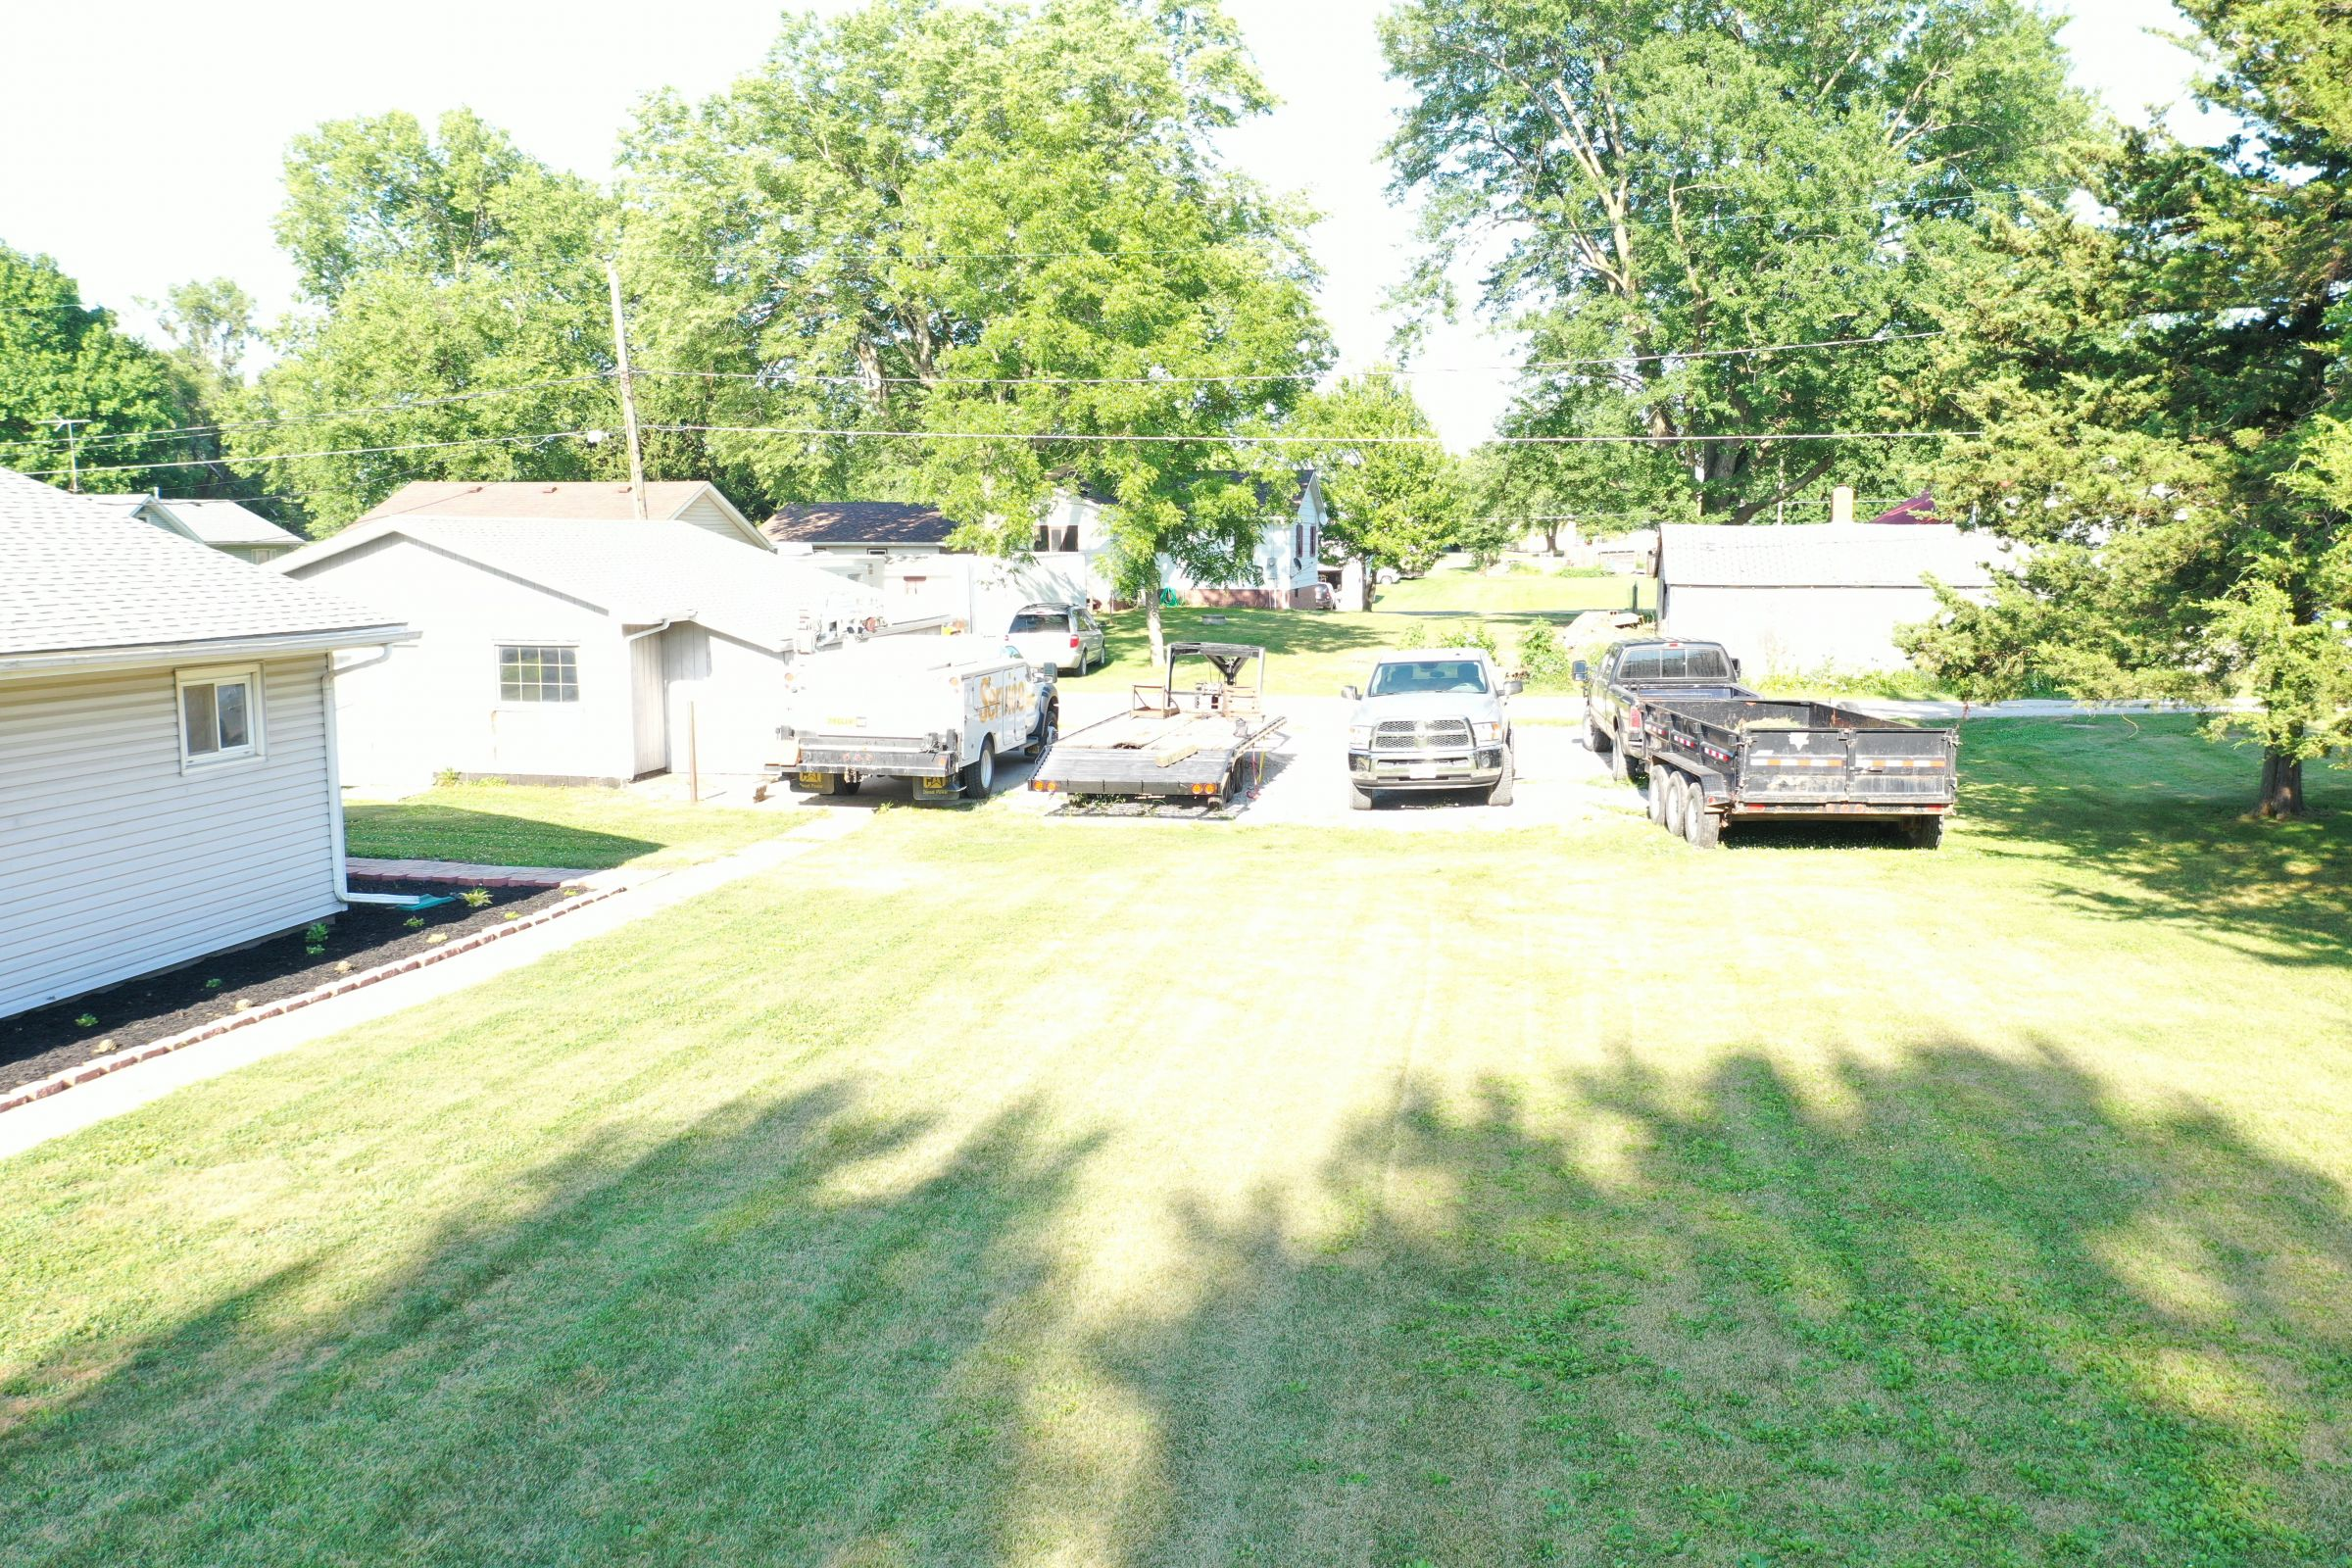 residential-marion-county-iowa-0-acres-listing-number-15074-0-2020-07-16-152713.jpg